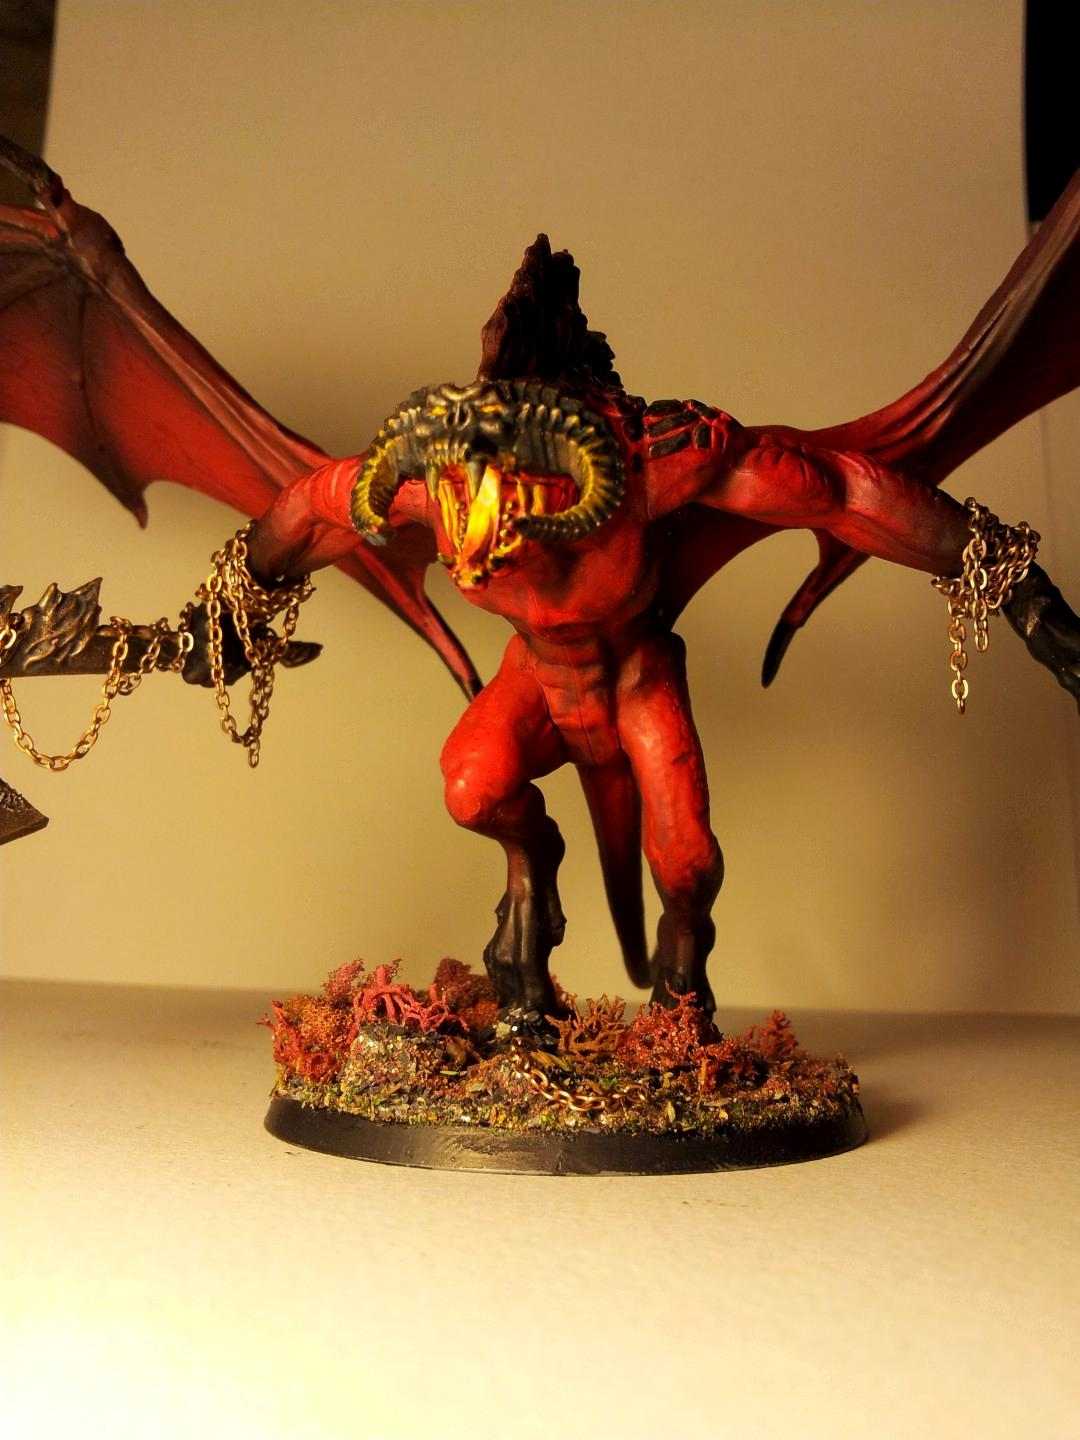 Balrog, Bloodthirster, Chaos, Chaos Daemons, Conversion, Daemons, Fire, Greater Daemon, Khorne, Object Source Lighting, Red